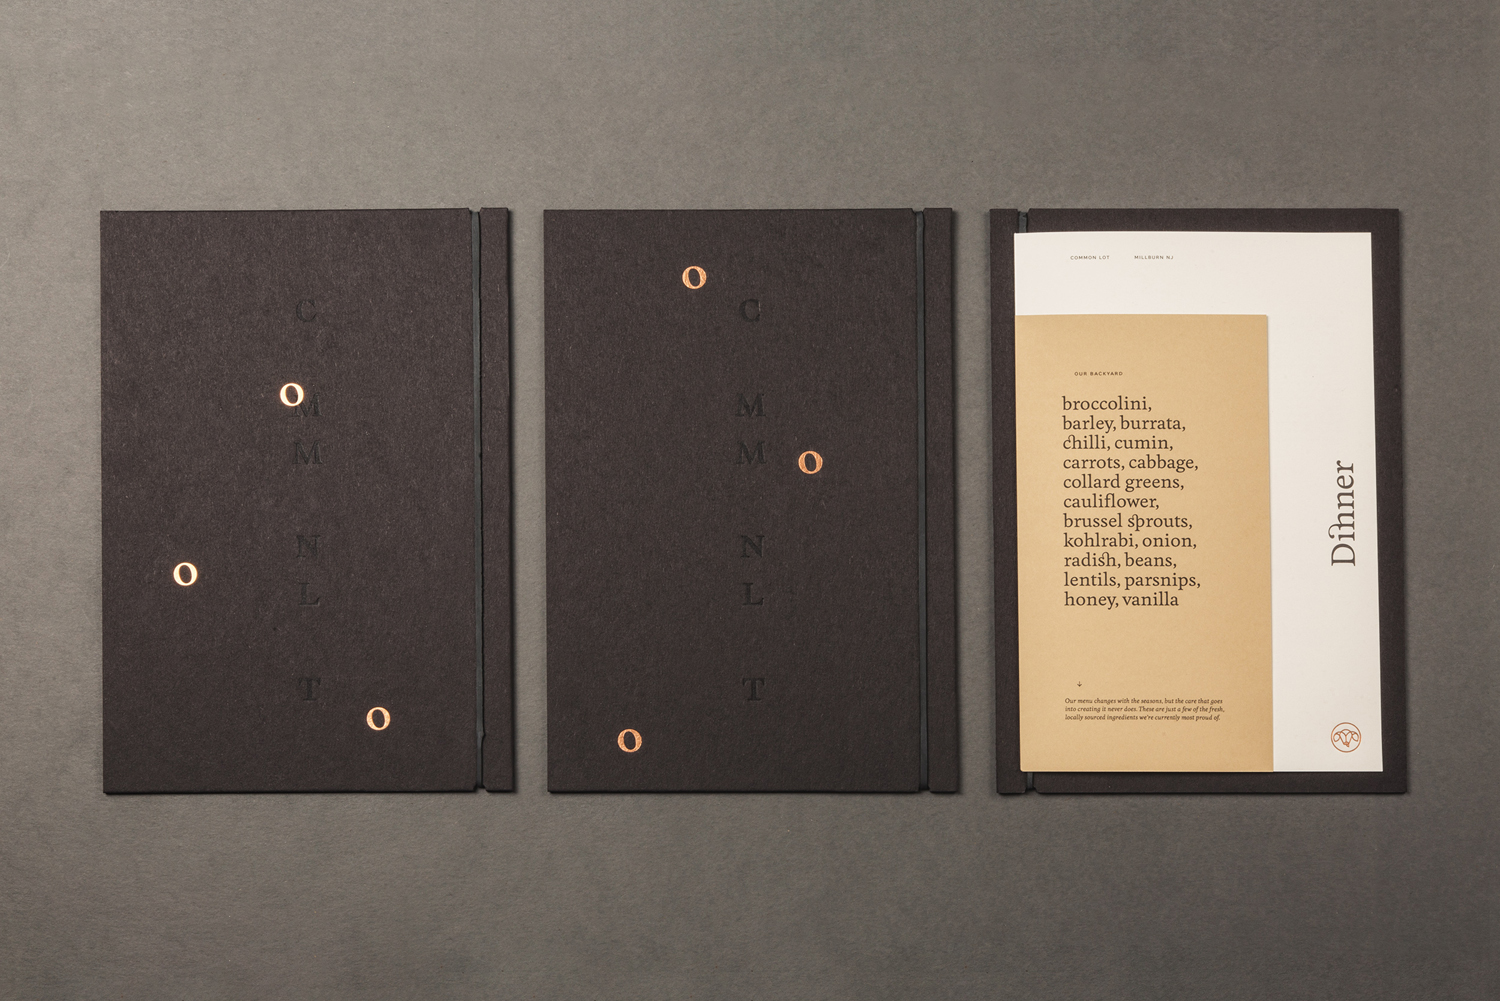 Menu Design – Common Lot by Perky Bros, United States